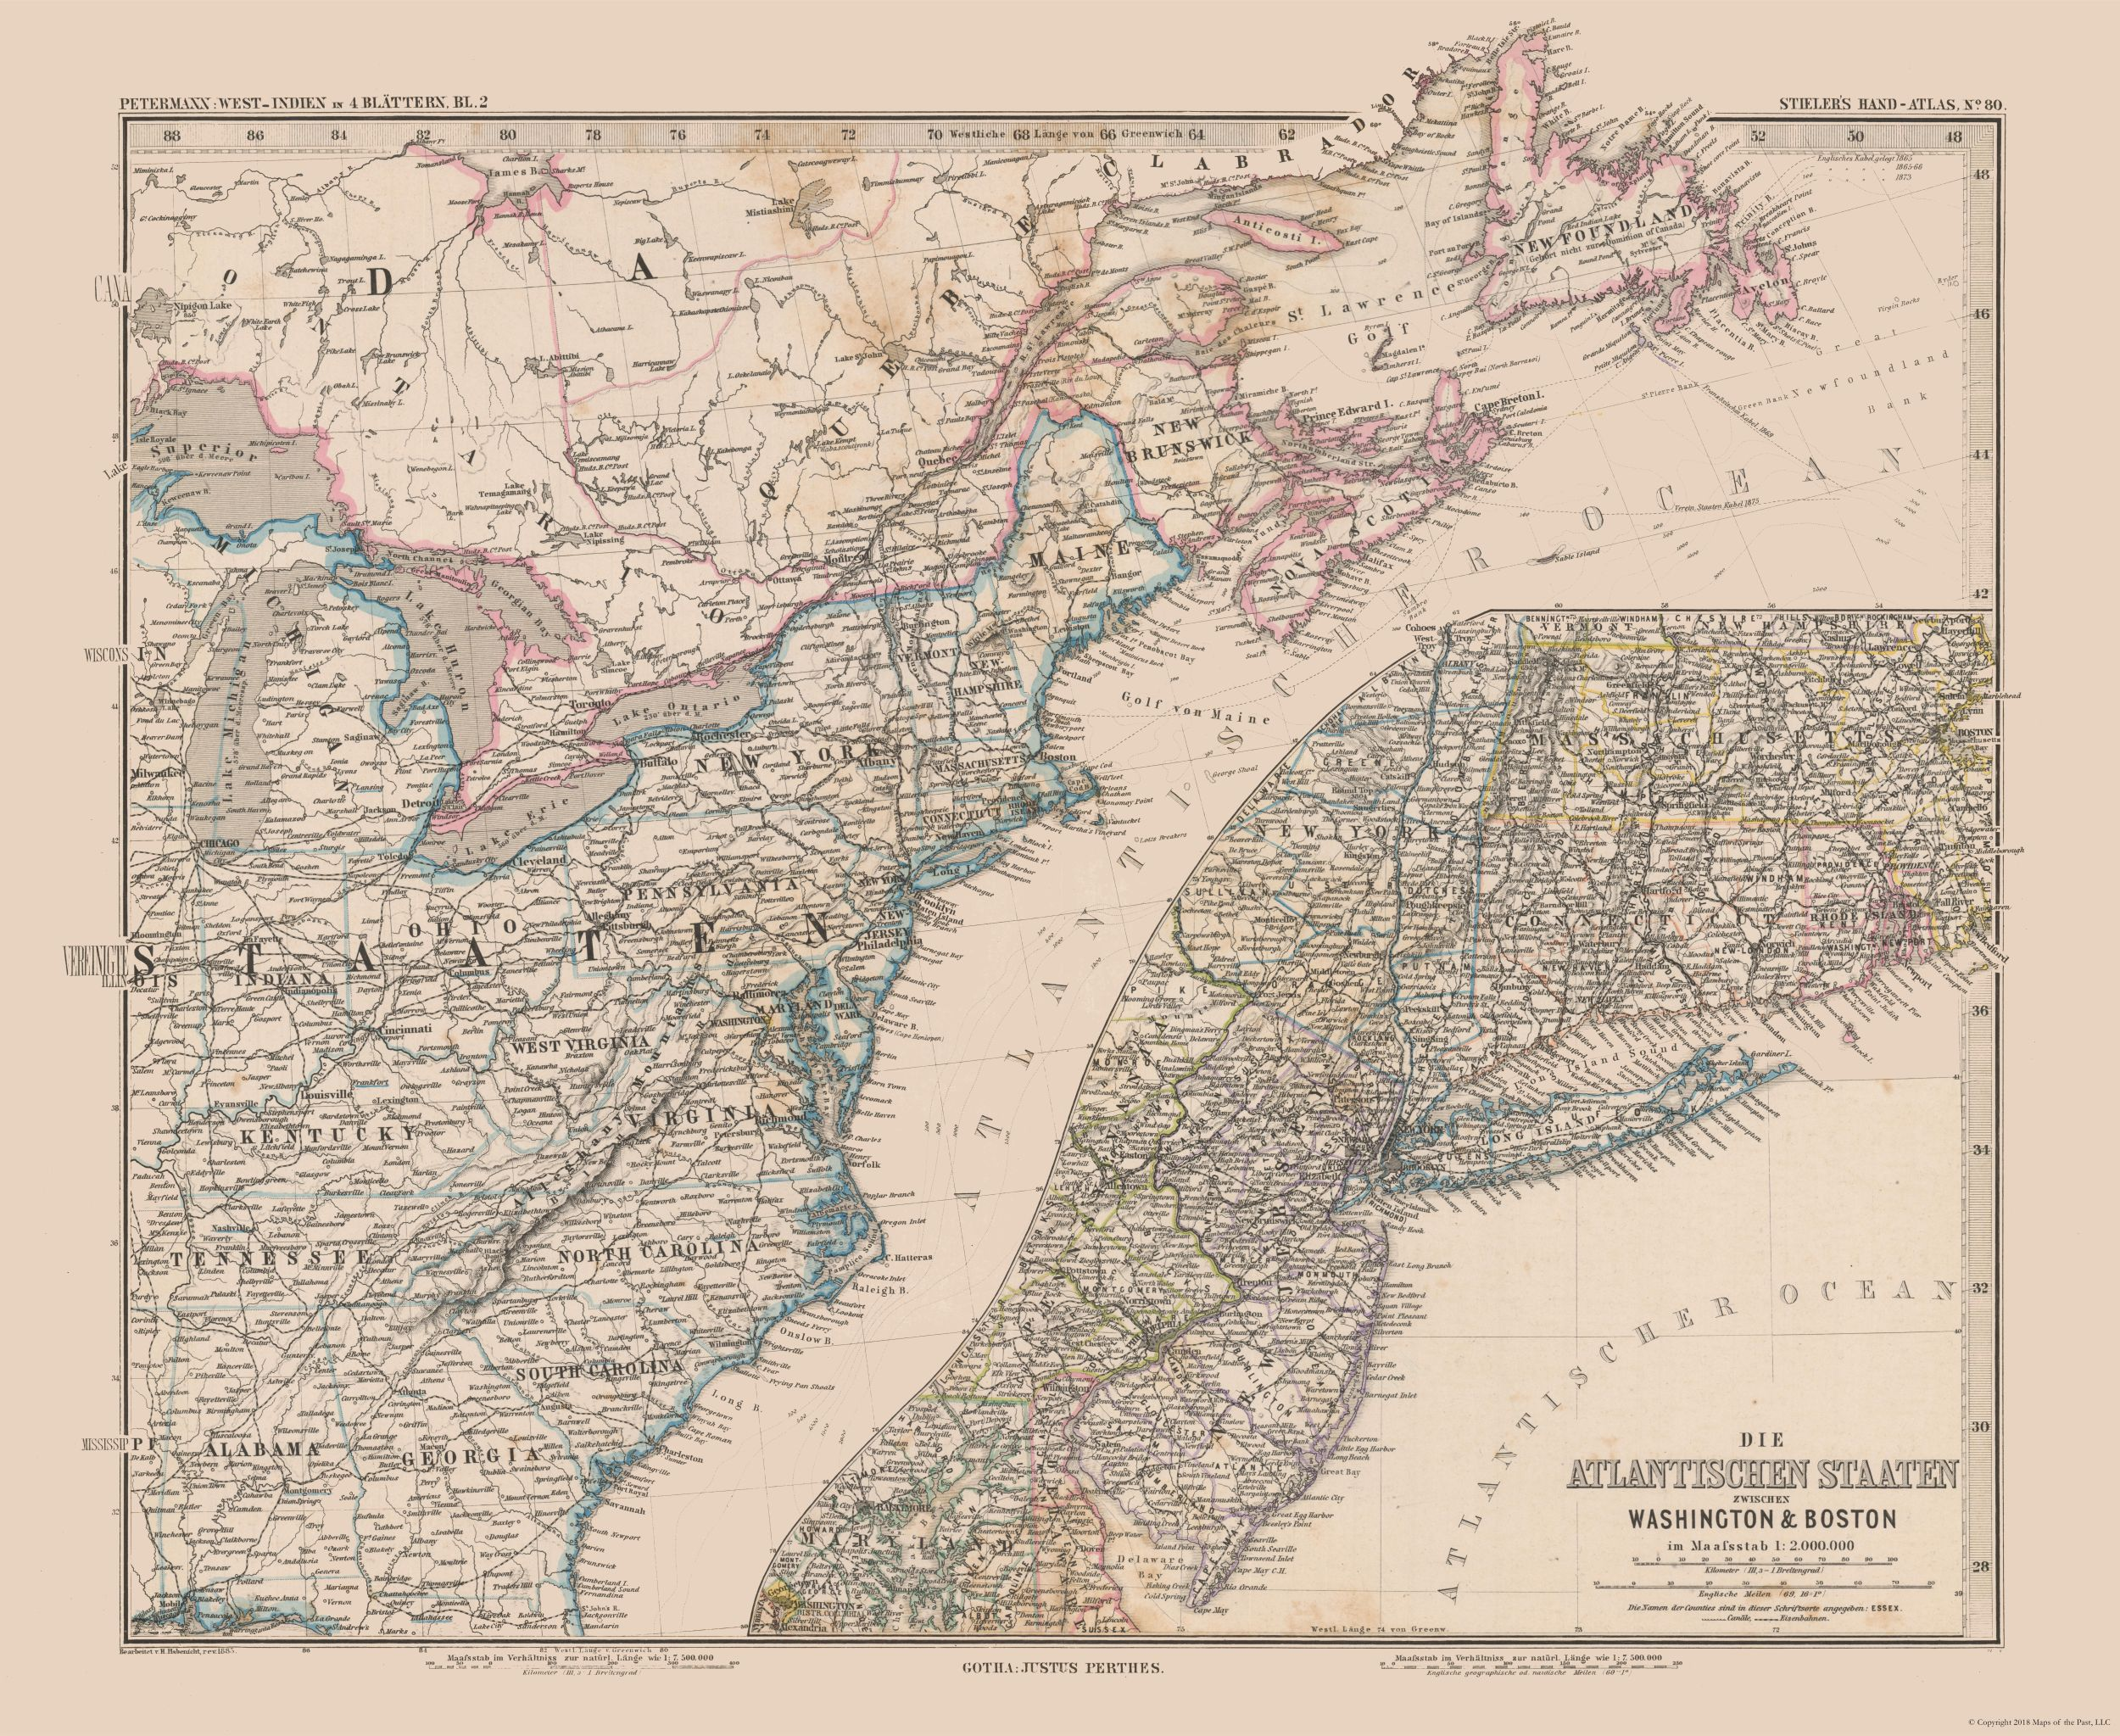 Old International Maps | Eastern US, Canada - Stielers 1885 - 28.09 x 23